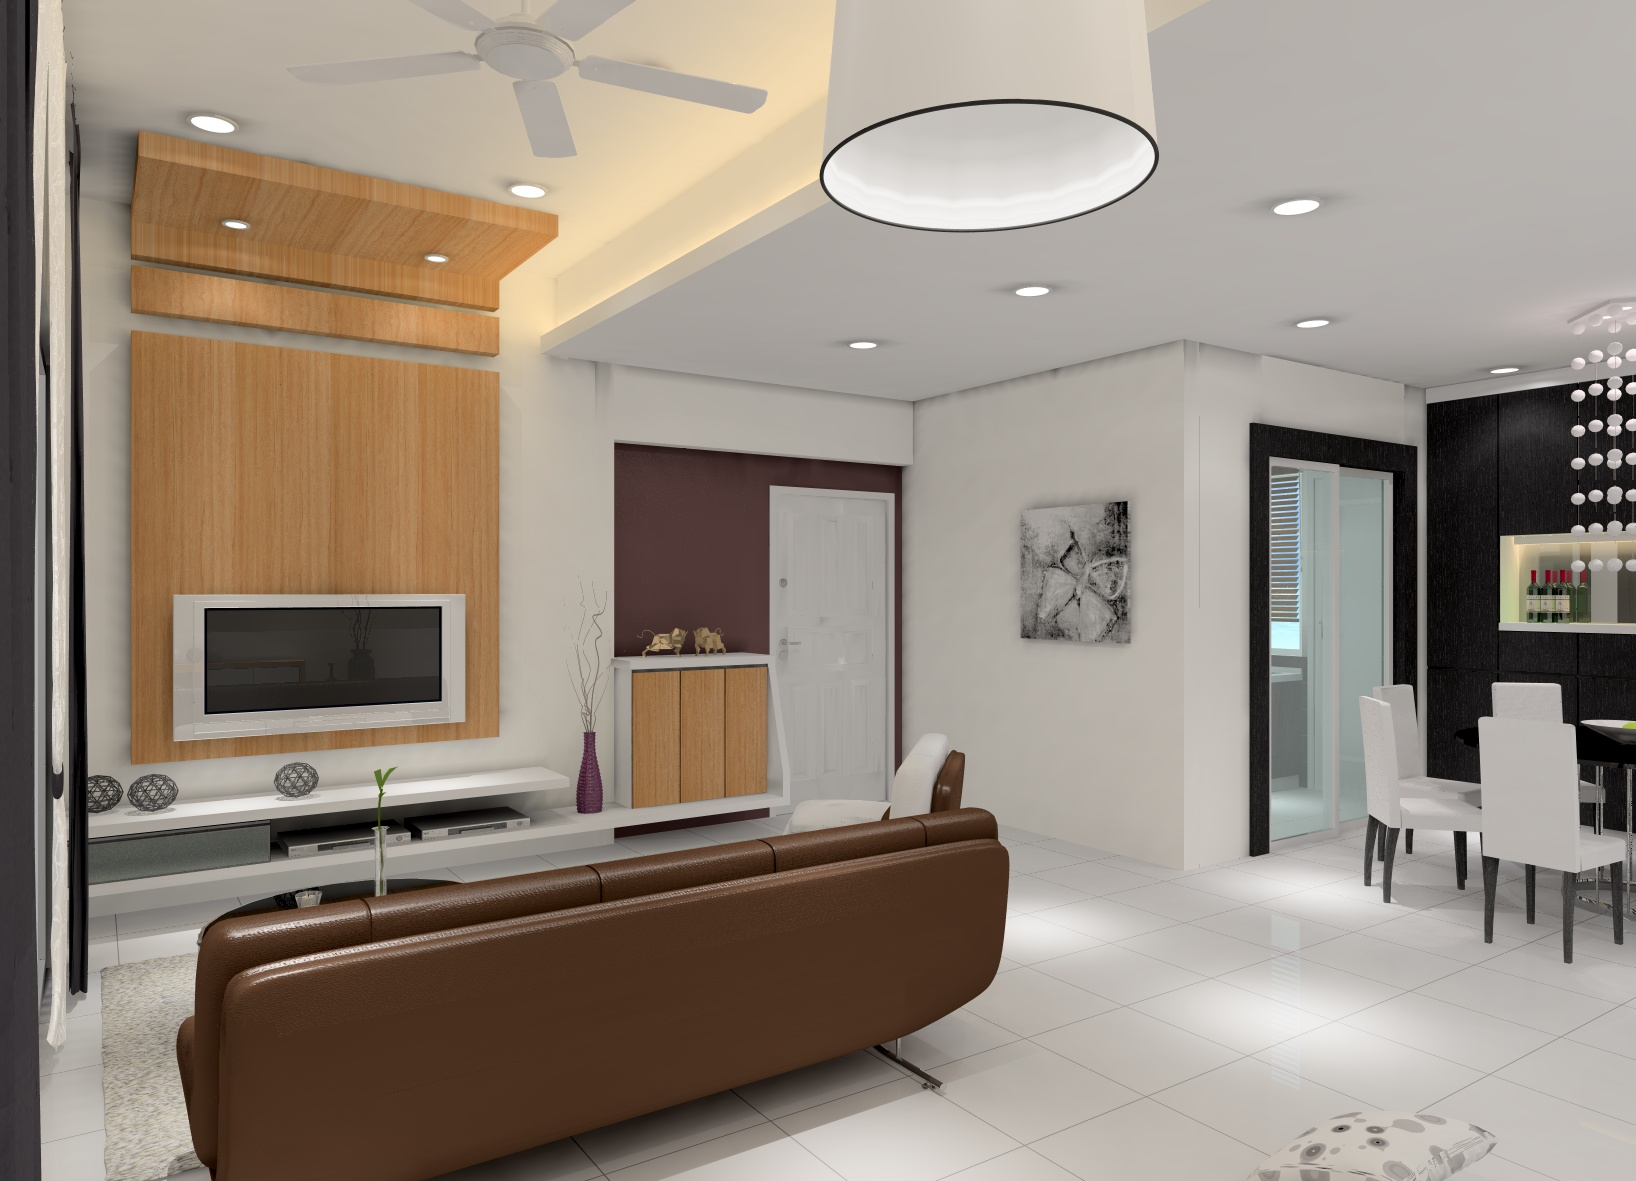 Interior design malaysia l expert interior design renovation company l yk - House of design ...